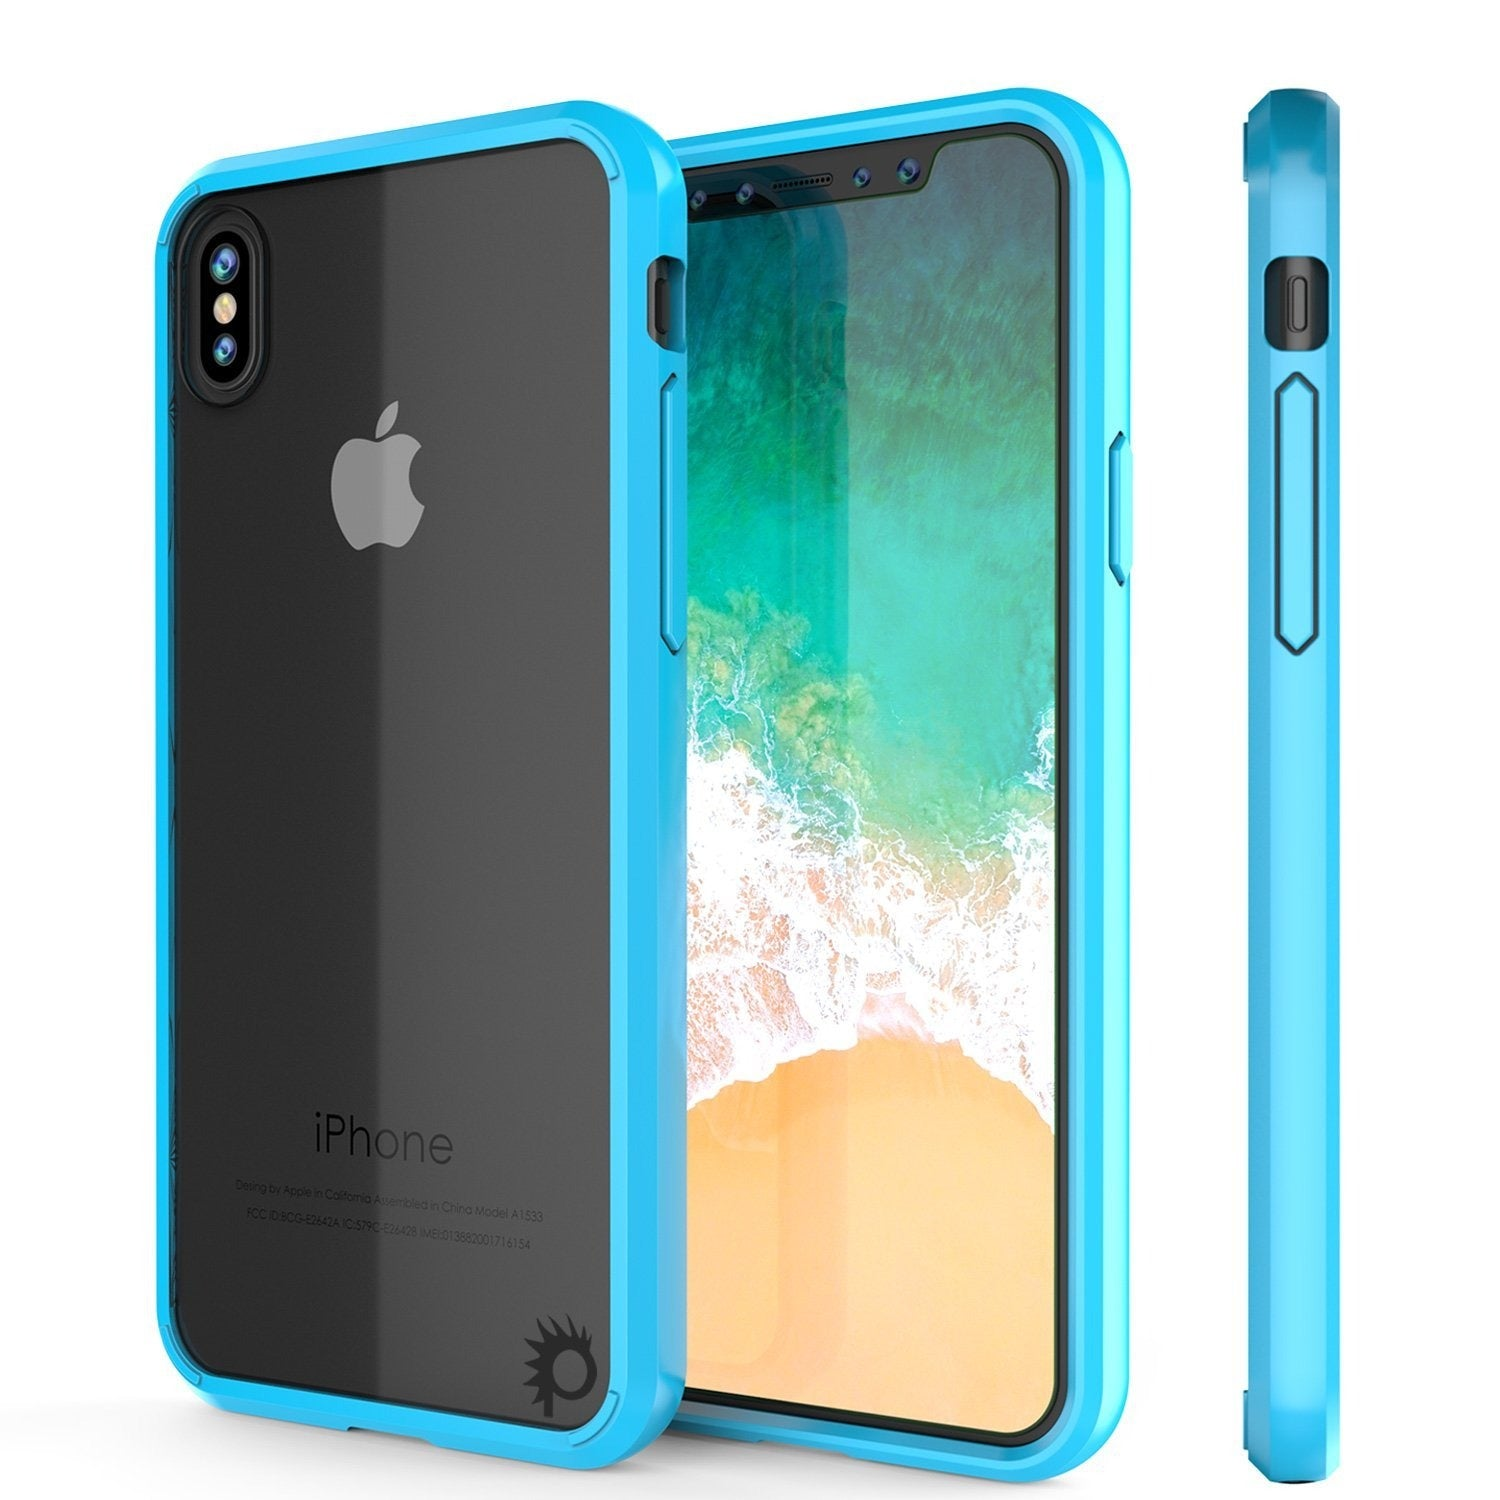 iPhone X Punkcase LUCID 2.0 Series Slim Fit Dual Layer Case Light Blue